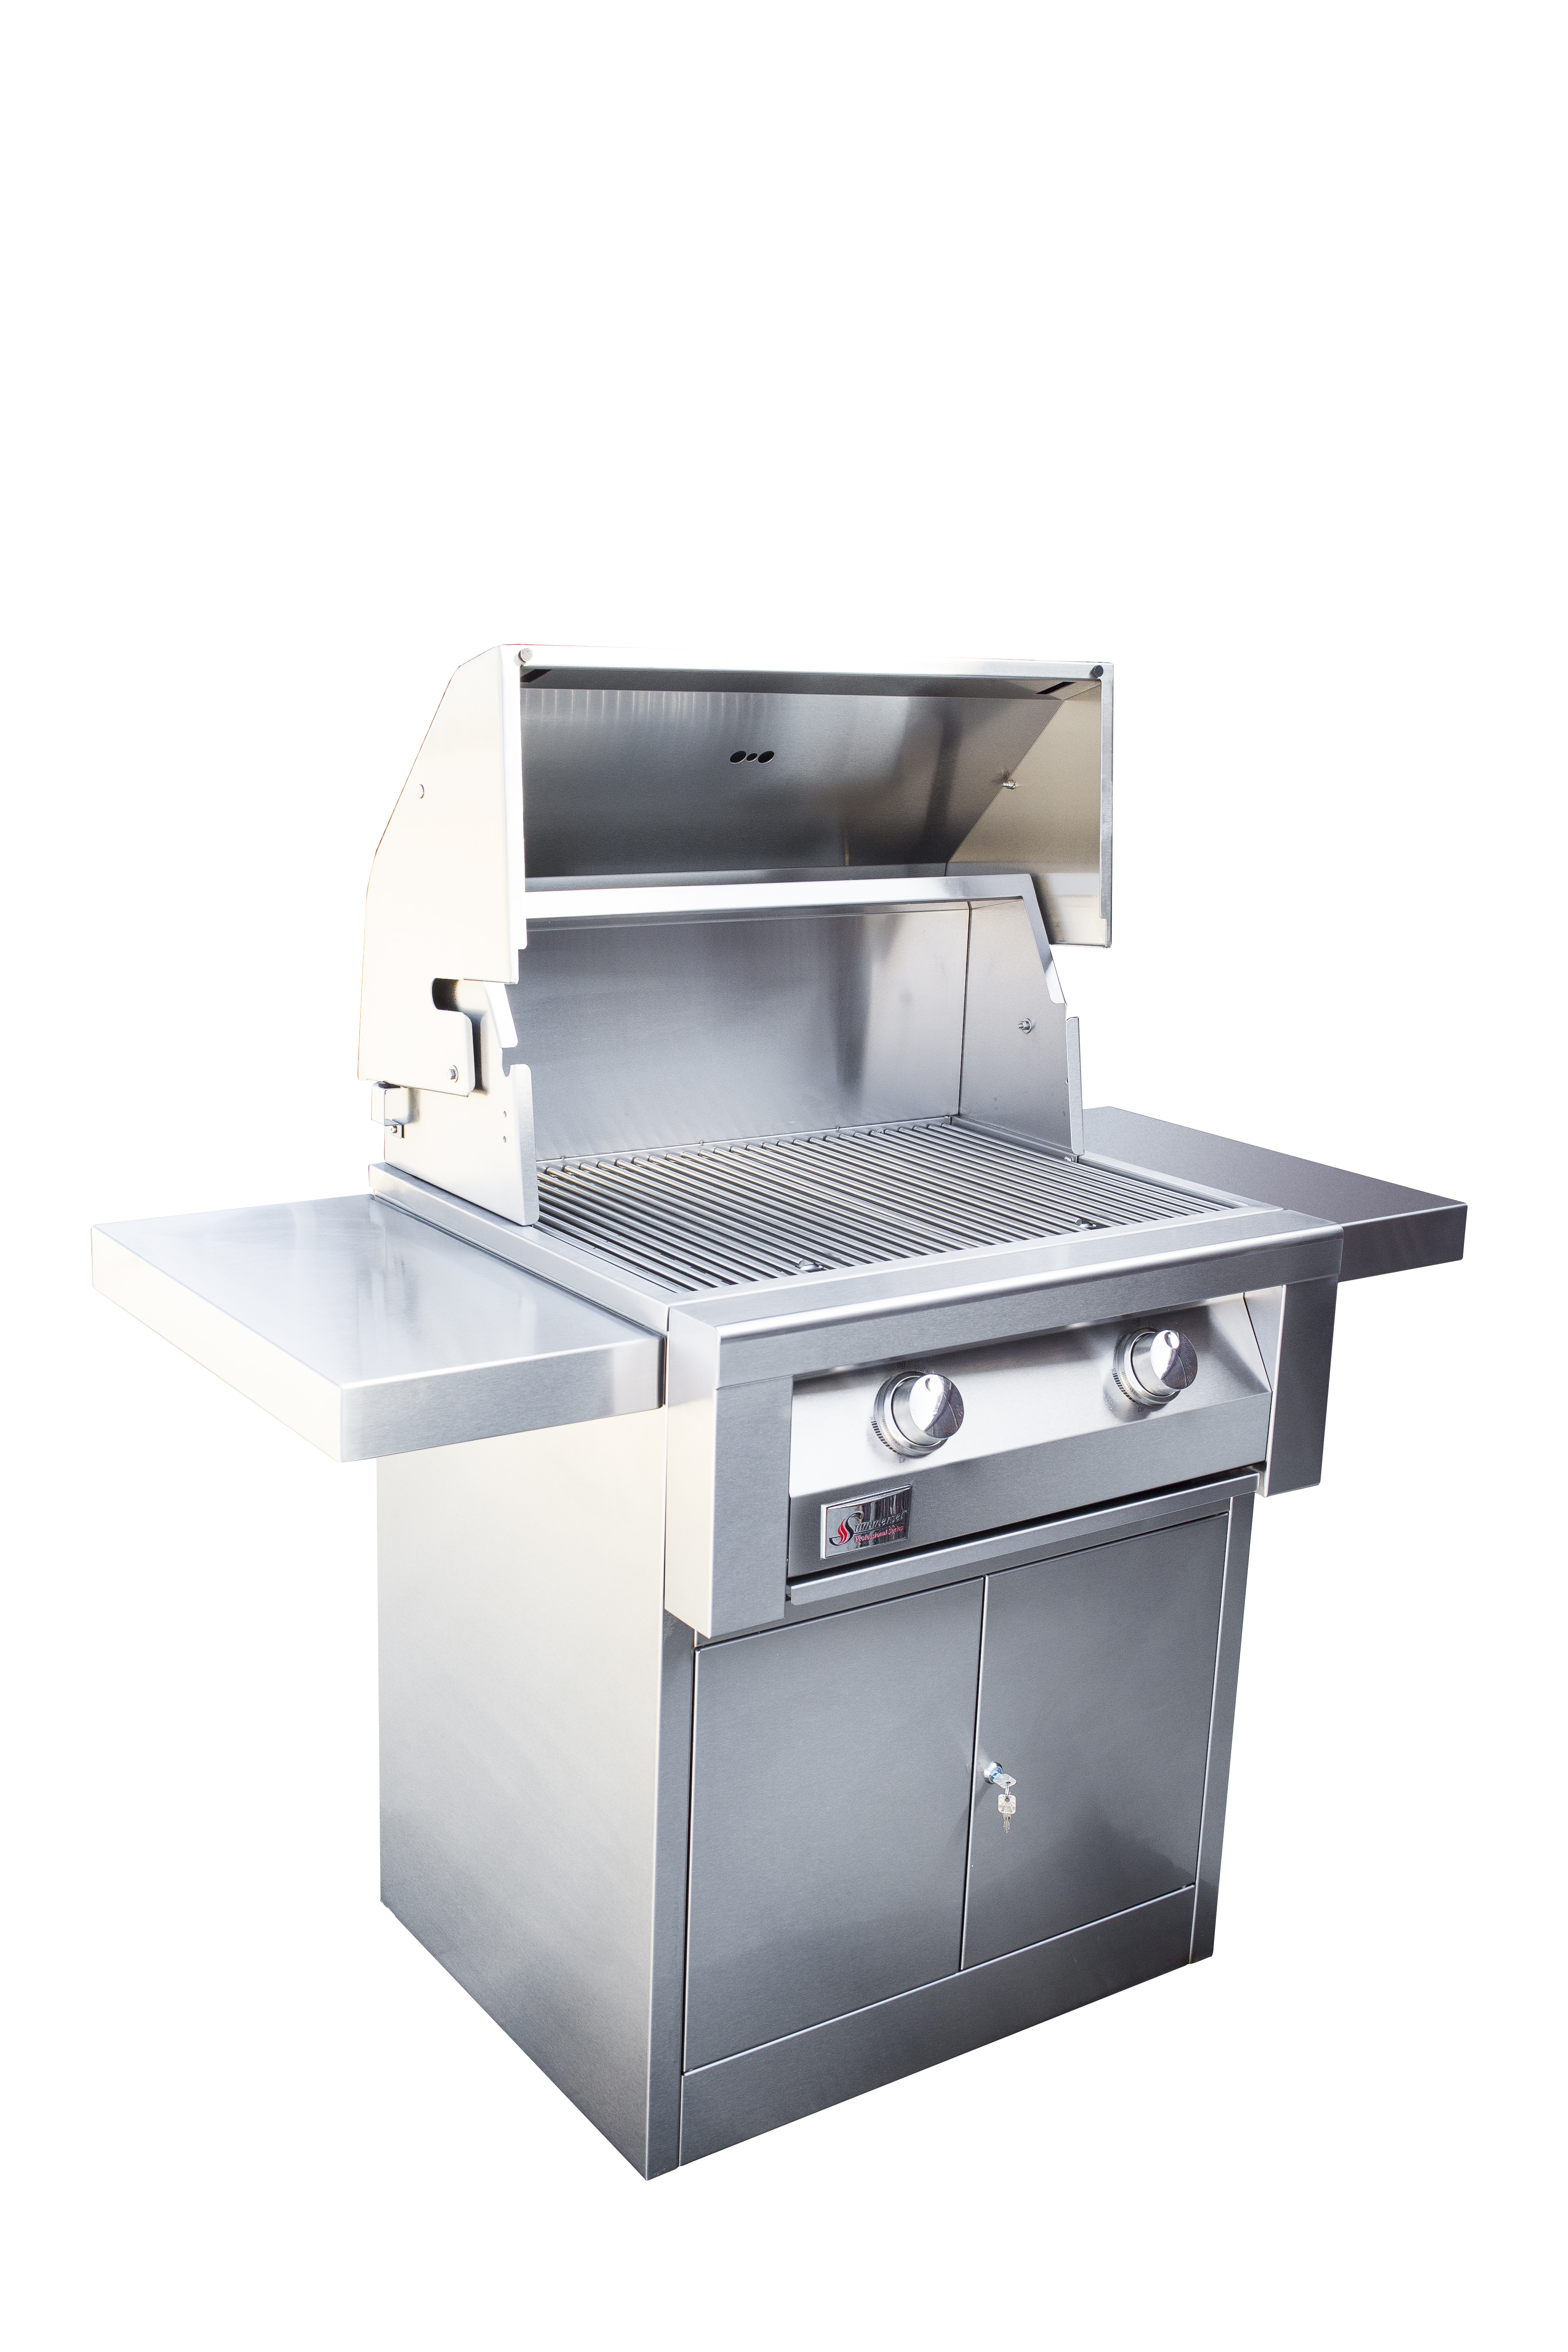 """Built In Grill: Summerset TRLD 32"""" Built-in Grill, Deluxe Stainless Steel"""